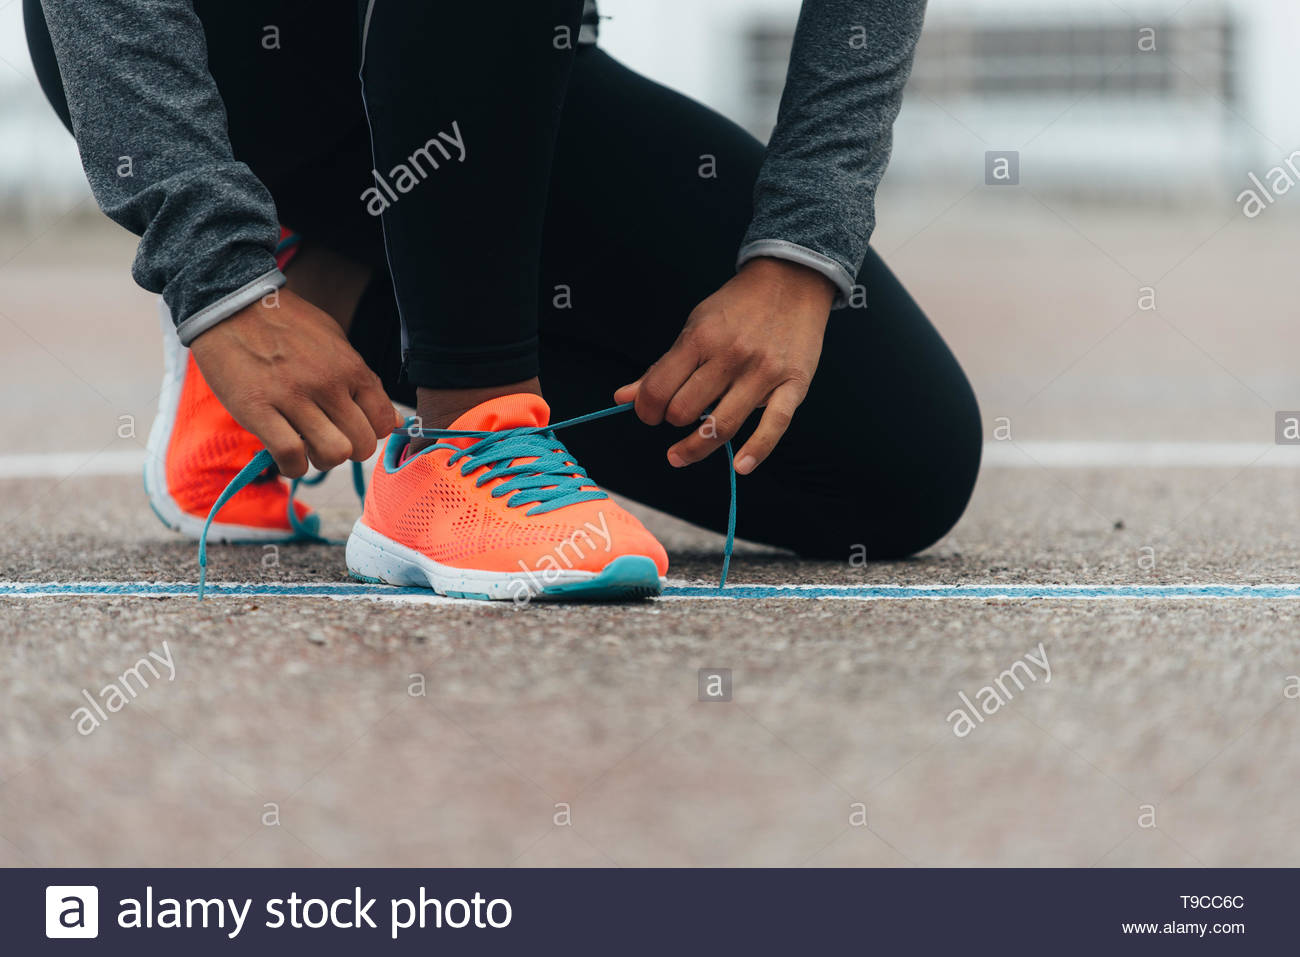 Detail of sporty swman lacing running shoes before before training. Outdoor city workout concept. Female fitness athlete getting ready for working out Stock Photo